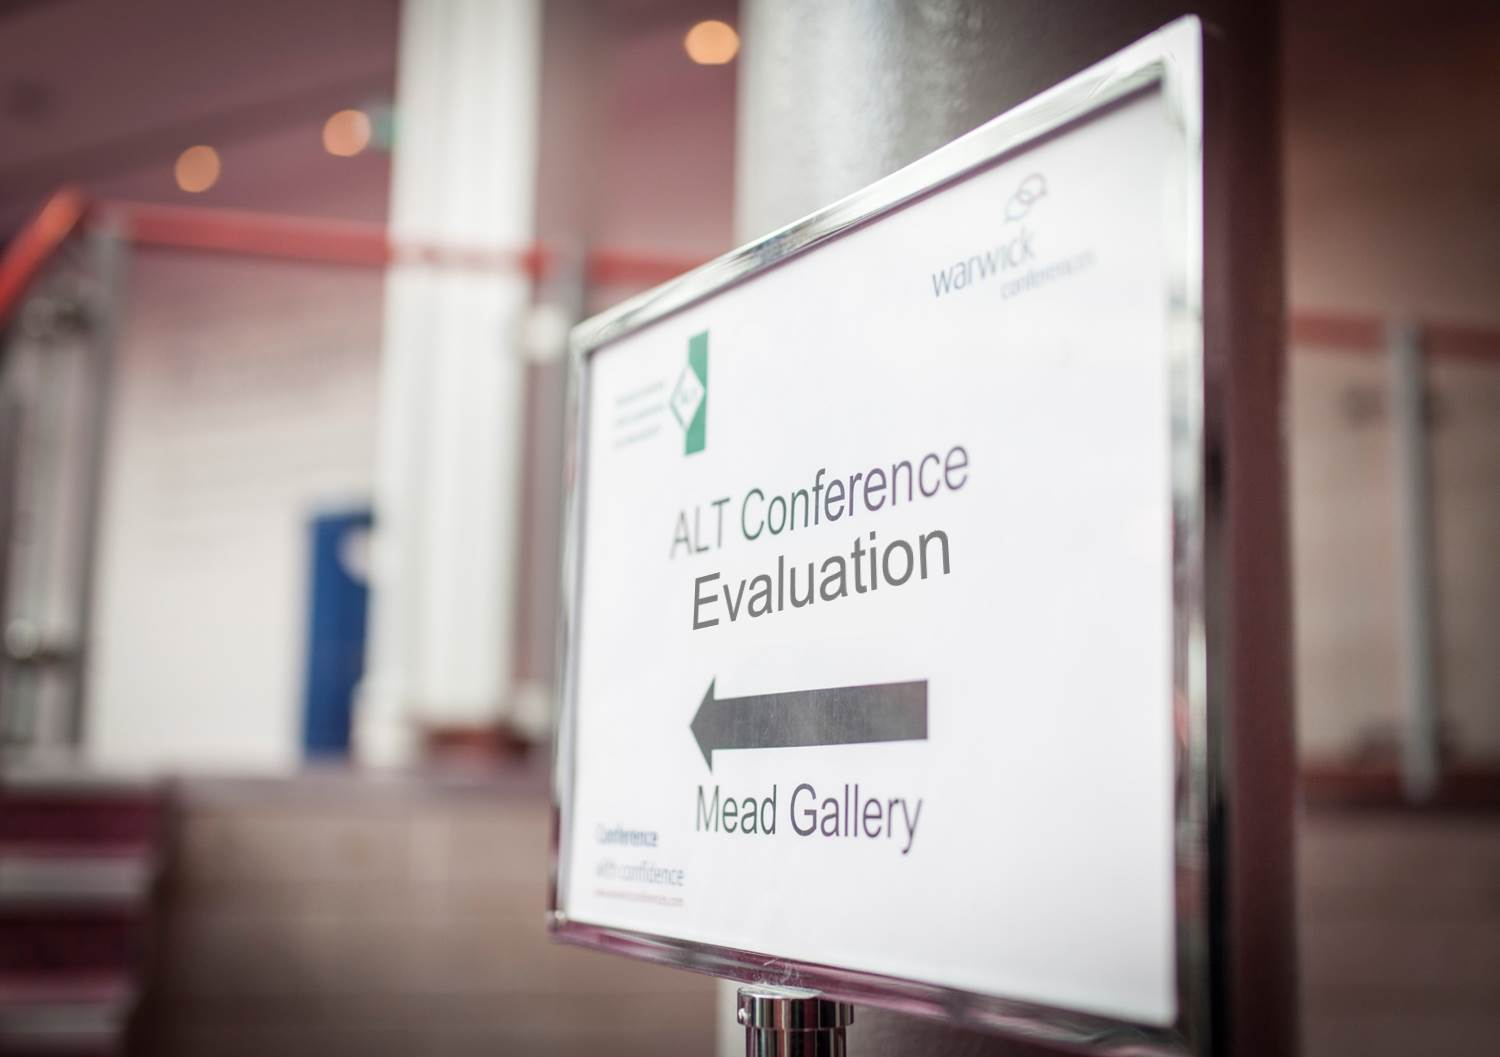 Tell us about your experience #altc